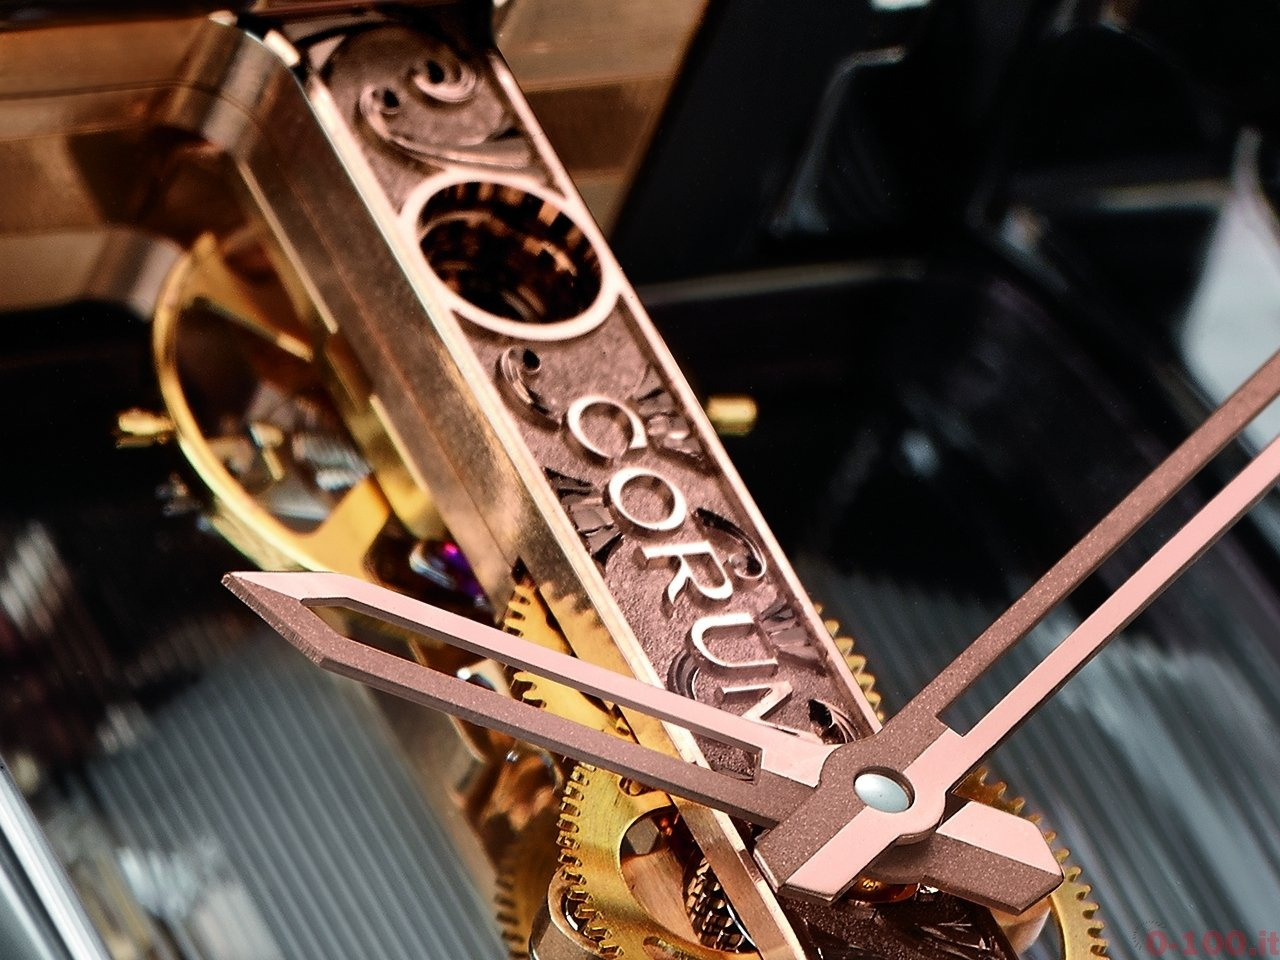 baselworld-2015-corum-miss-golden-bridge-ceramic-0-100_4